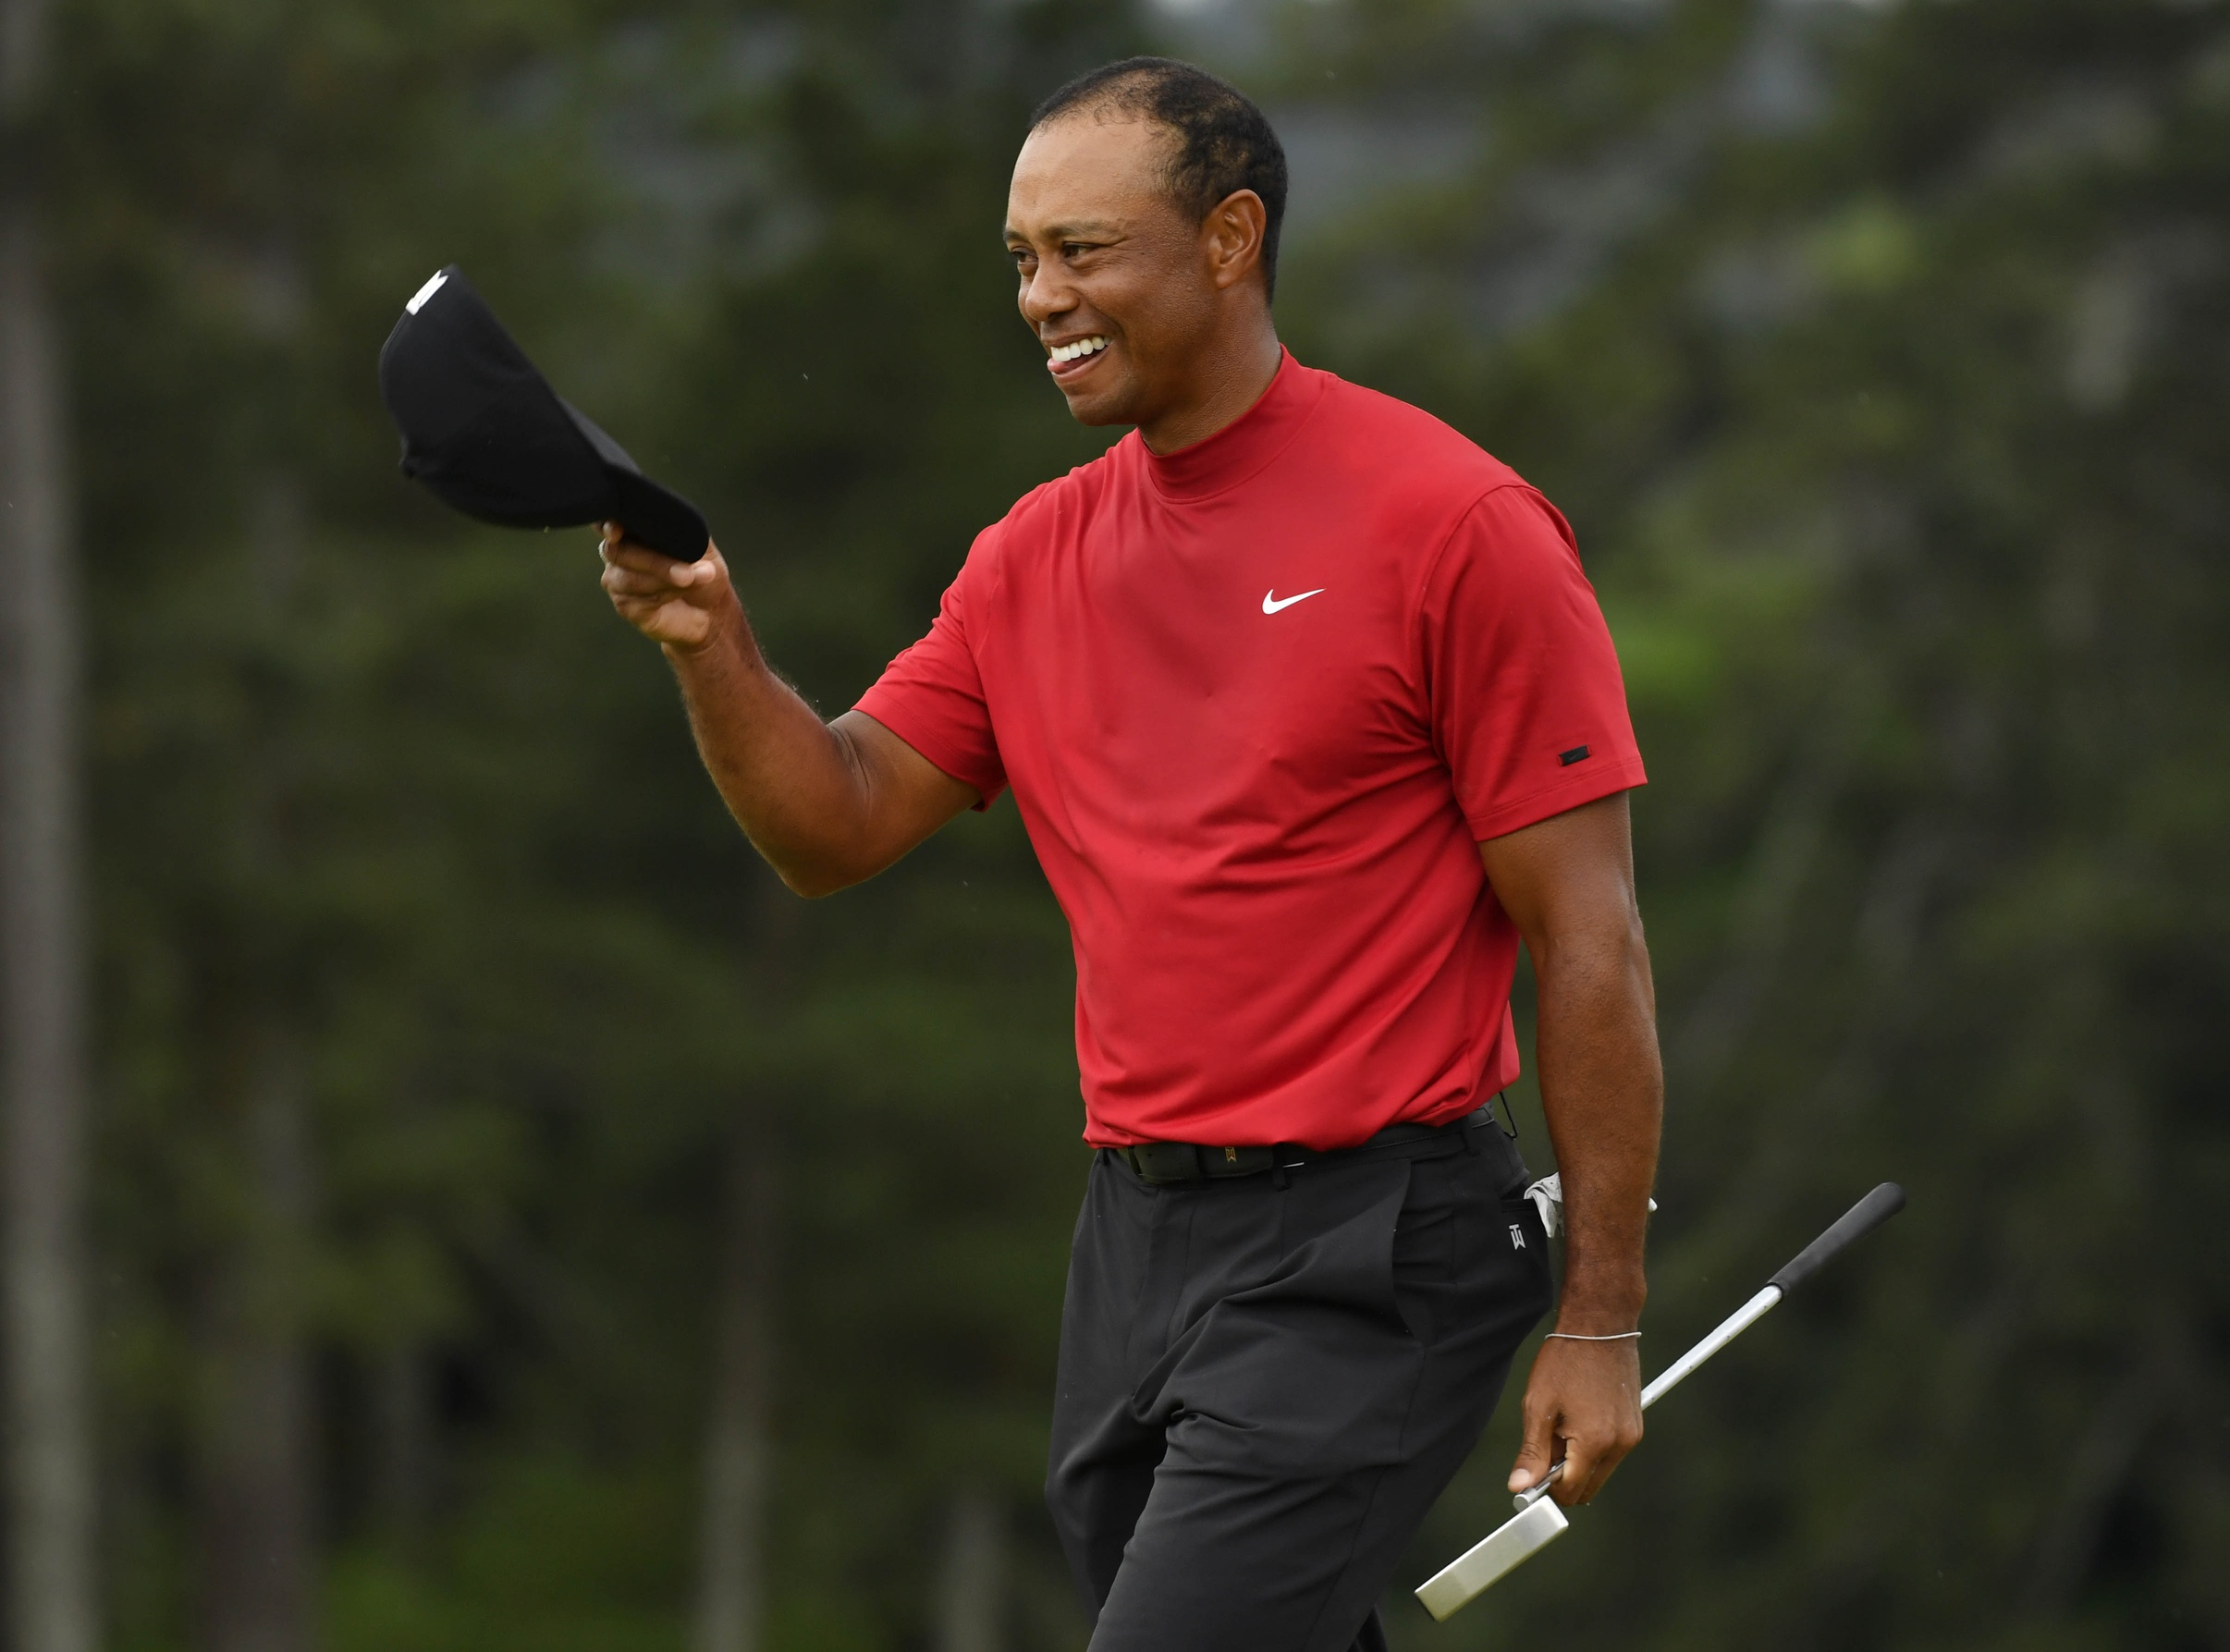 PGA Championship: Tiger Woods has quest for 18 majors back on track